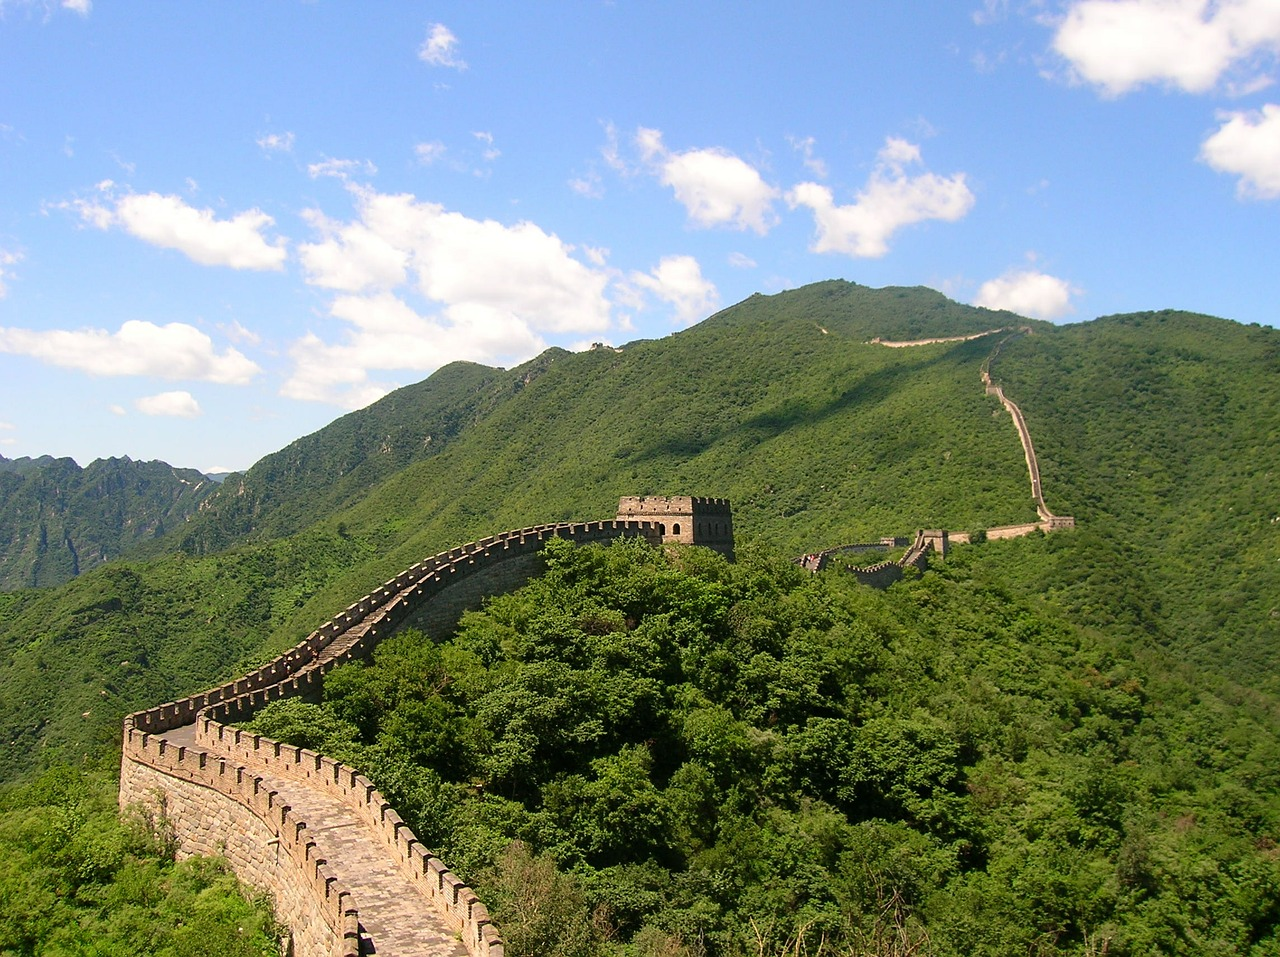 china places visit before wall beijing travel place famous chinese amazing unique destinations chine locations historical need history